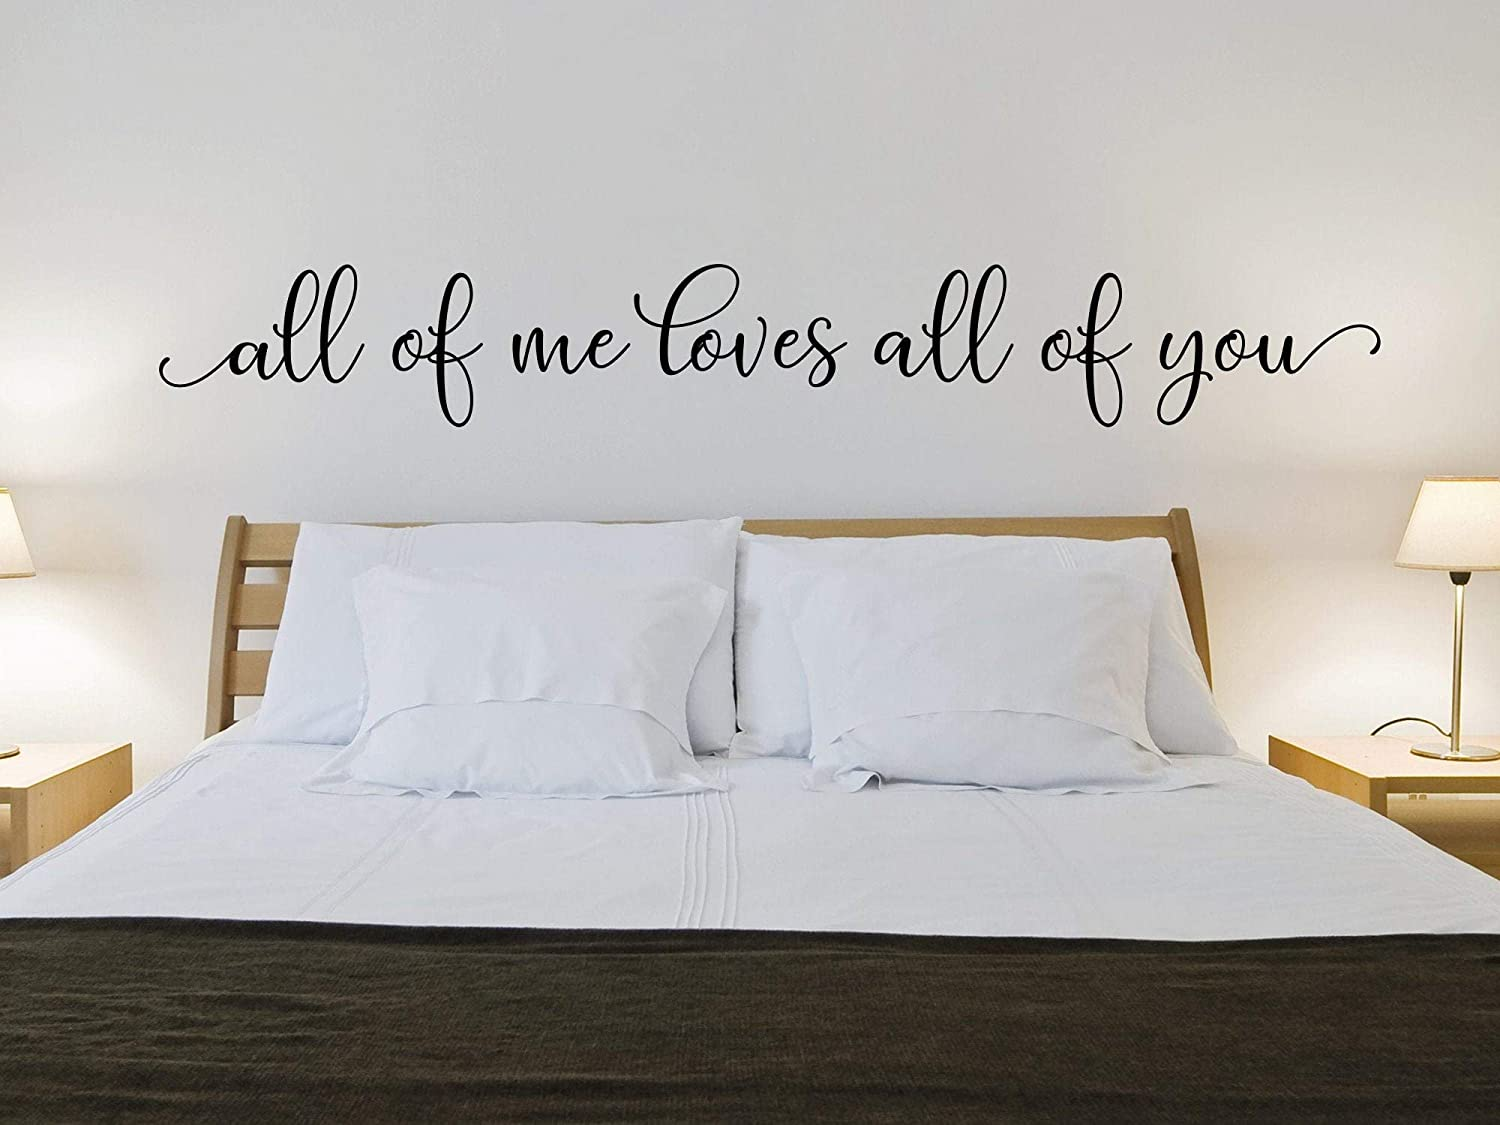 Amazon Com Ke10nce All Of Me Loves You Wall Decal Master Bedroom Romantic Quote Home Kitchen